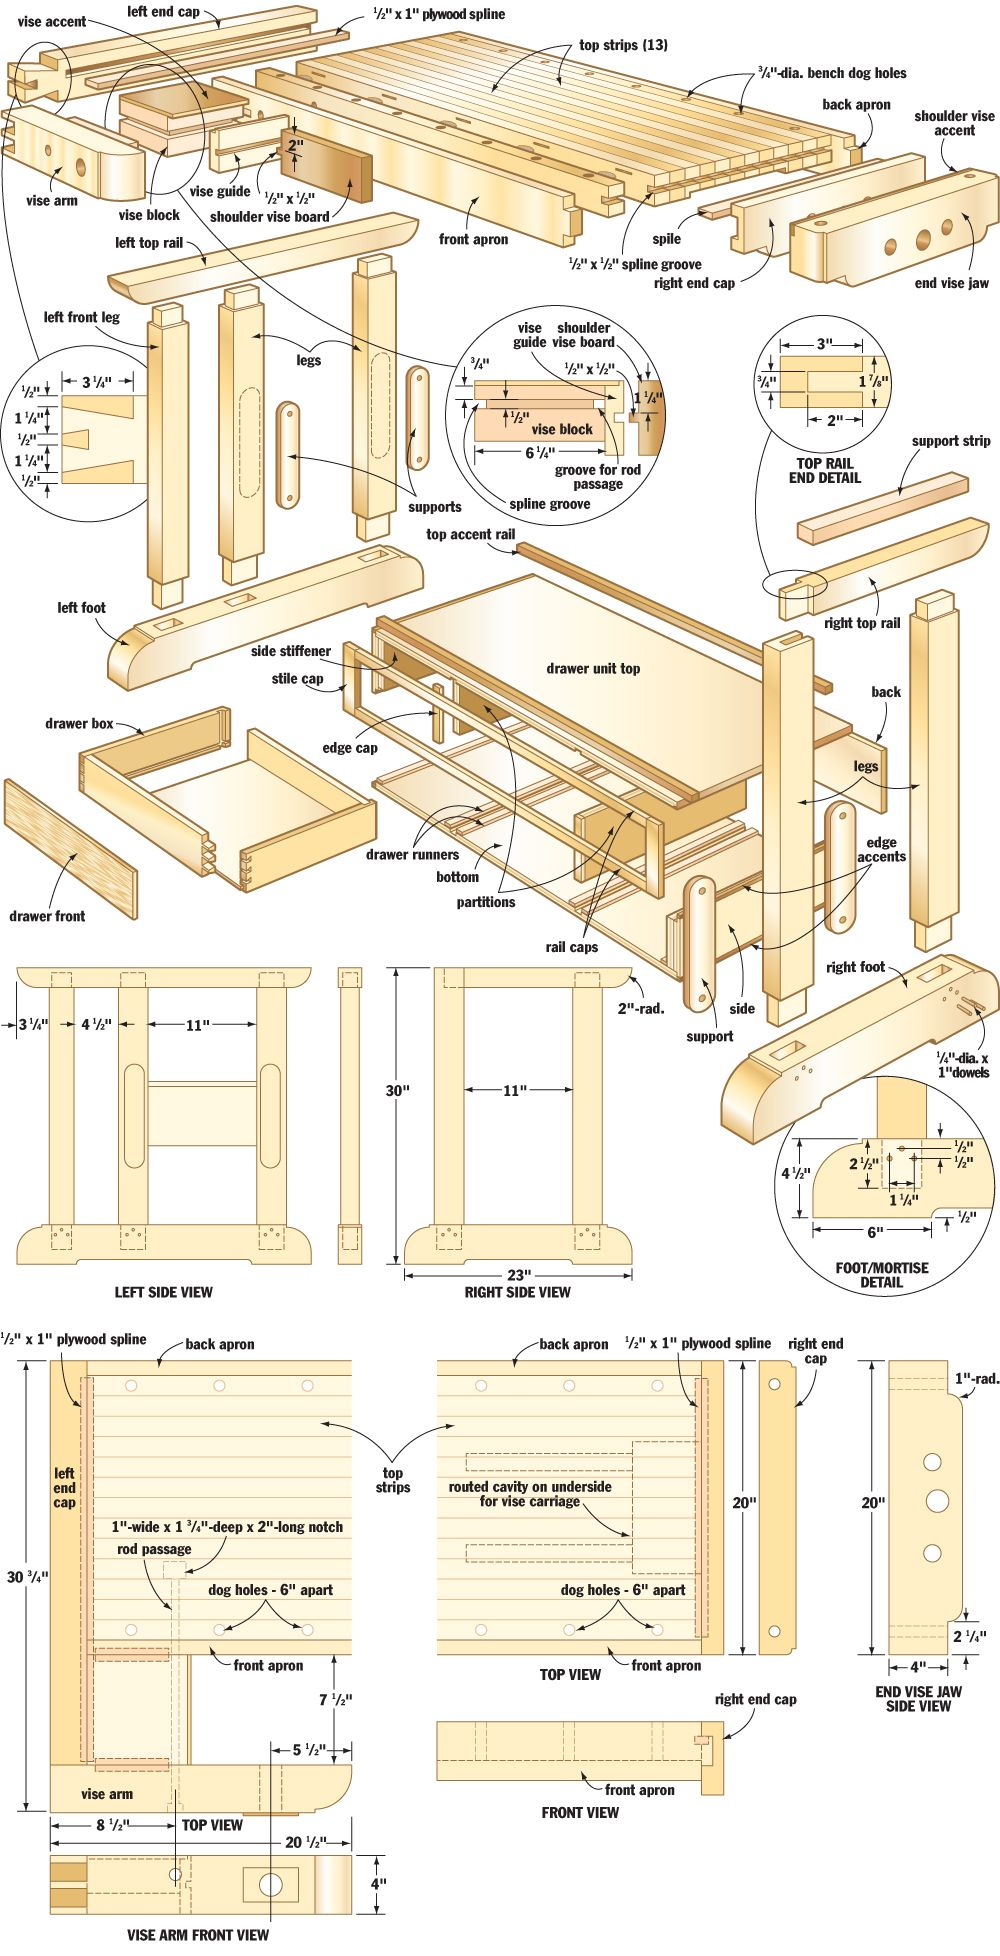 Woodworking Projects Plans: Teds Woodworking Review Teds Wood Working Offers 16,000